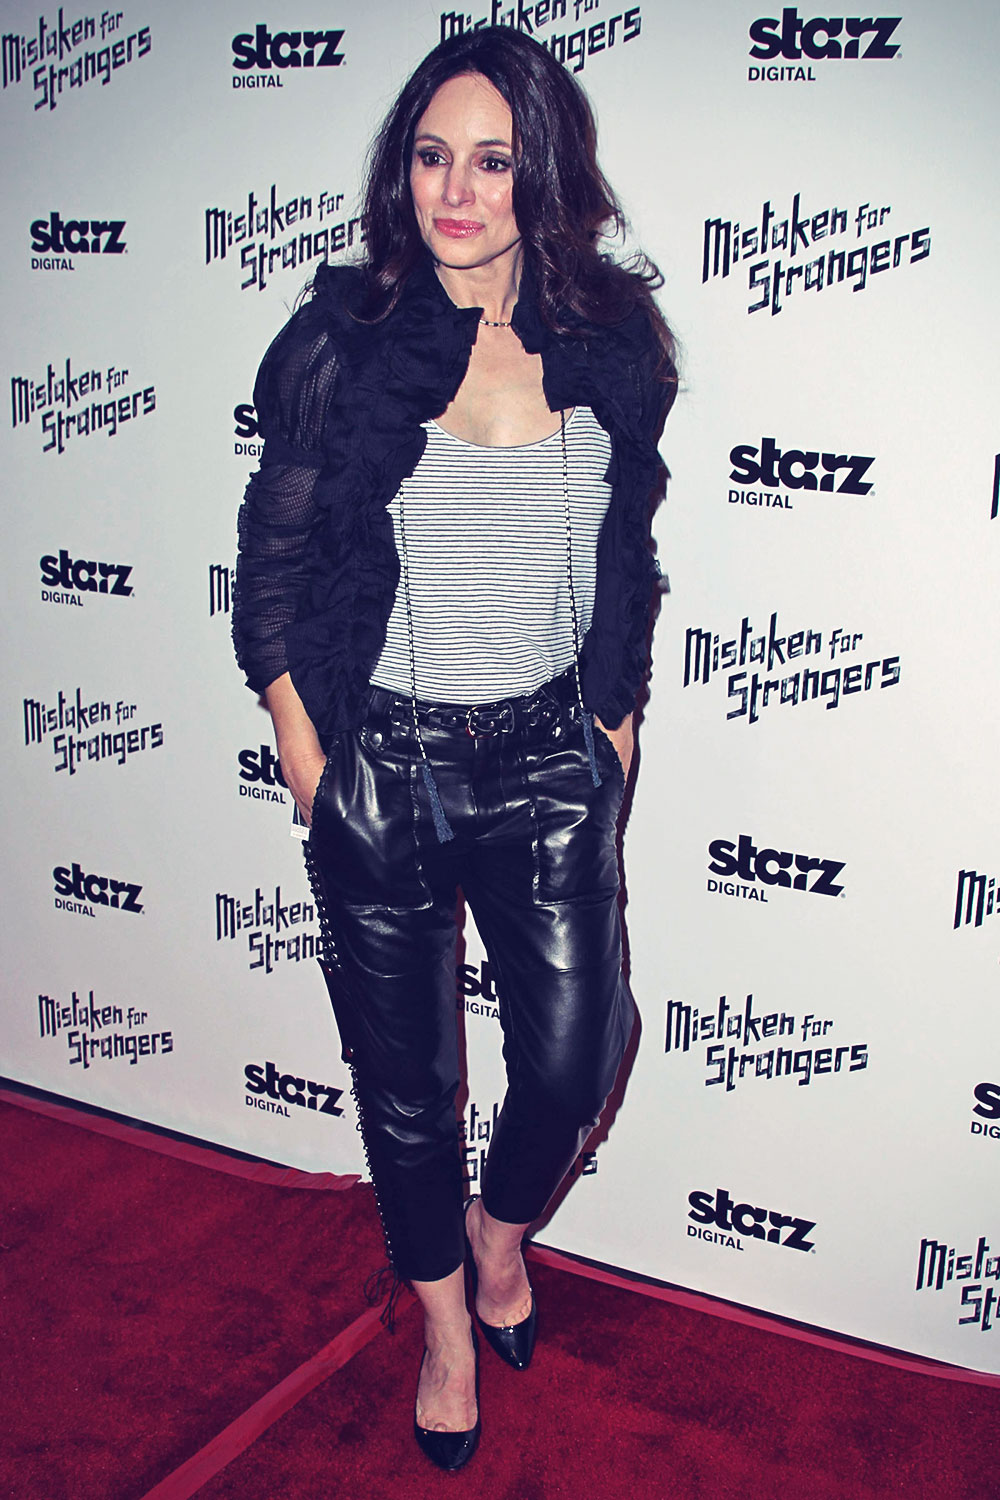 Madeleine Stowe attends screening of Mistaken For Strangers Shrine Auditorium